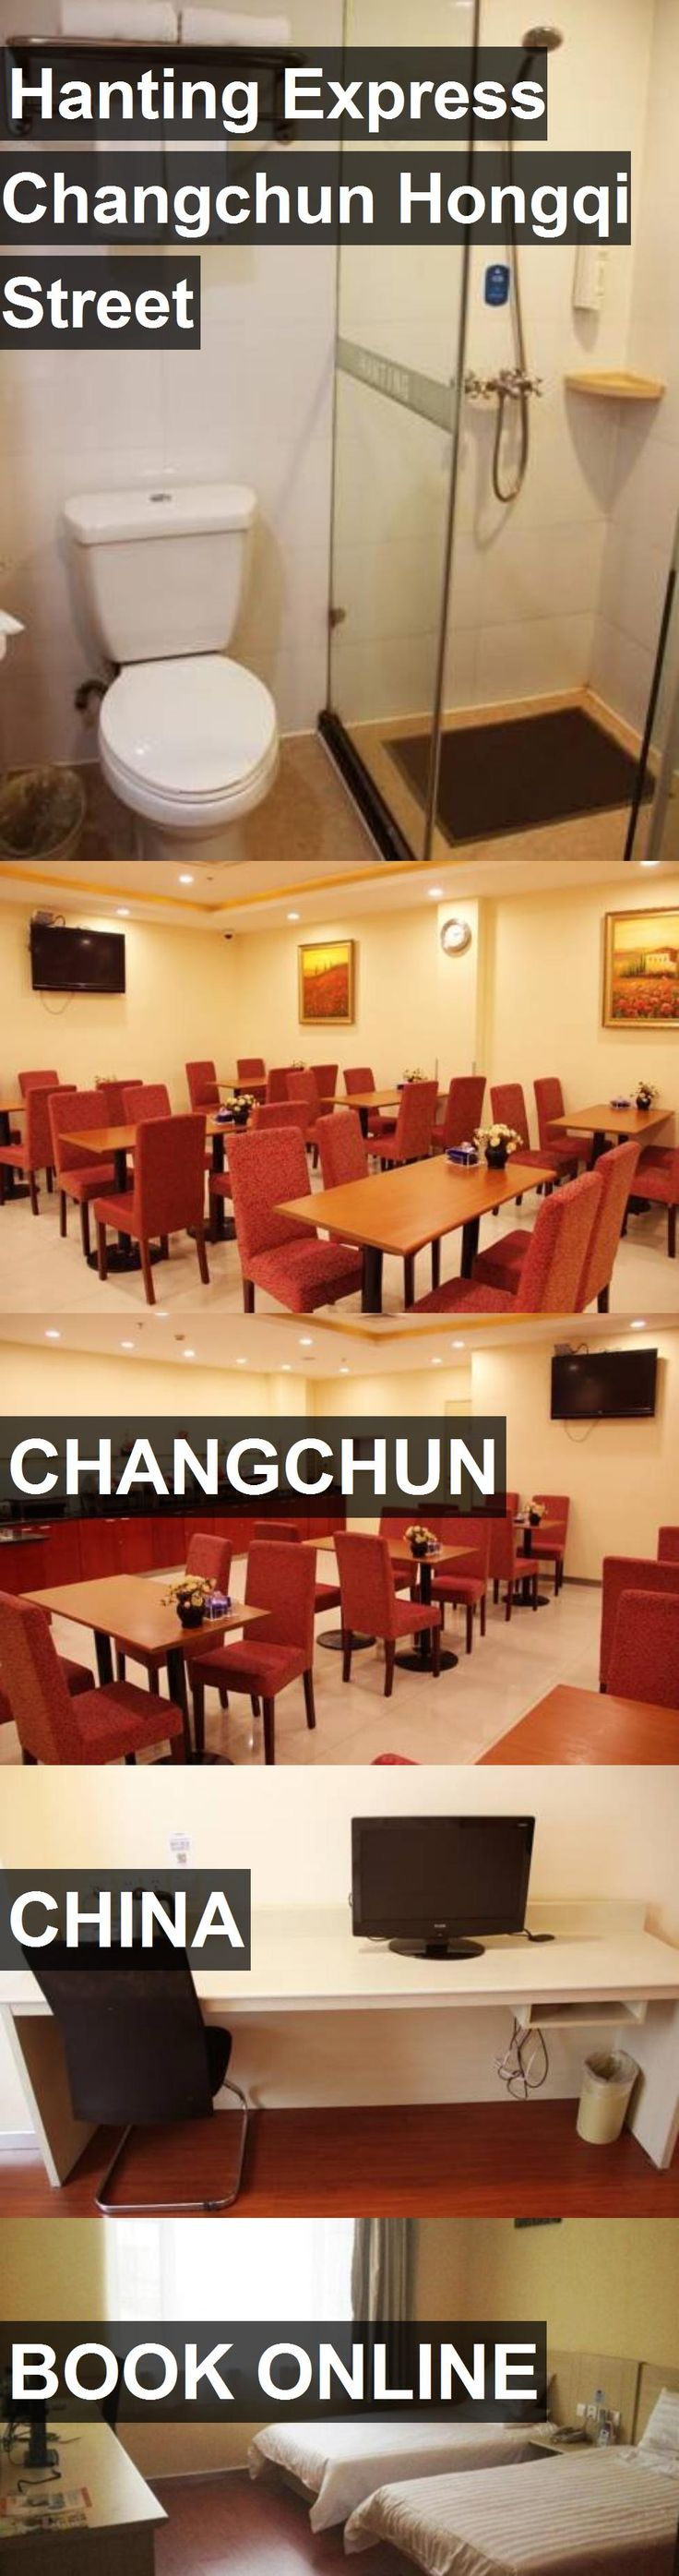 Hotel Hanting Express Changchun Hongqi Street in Changchun, China. For more information, photos, reviews and best prices please follow the link. #China #Changchun #travel #vacation #hotel